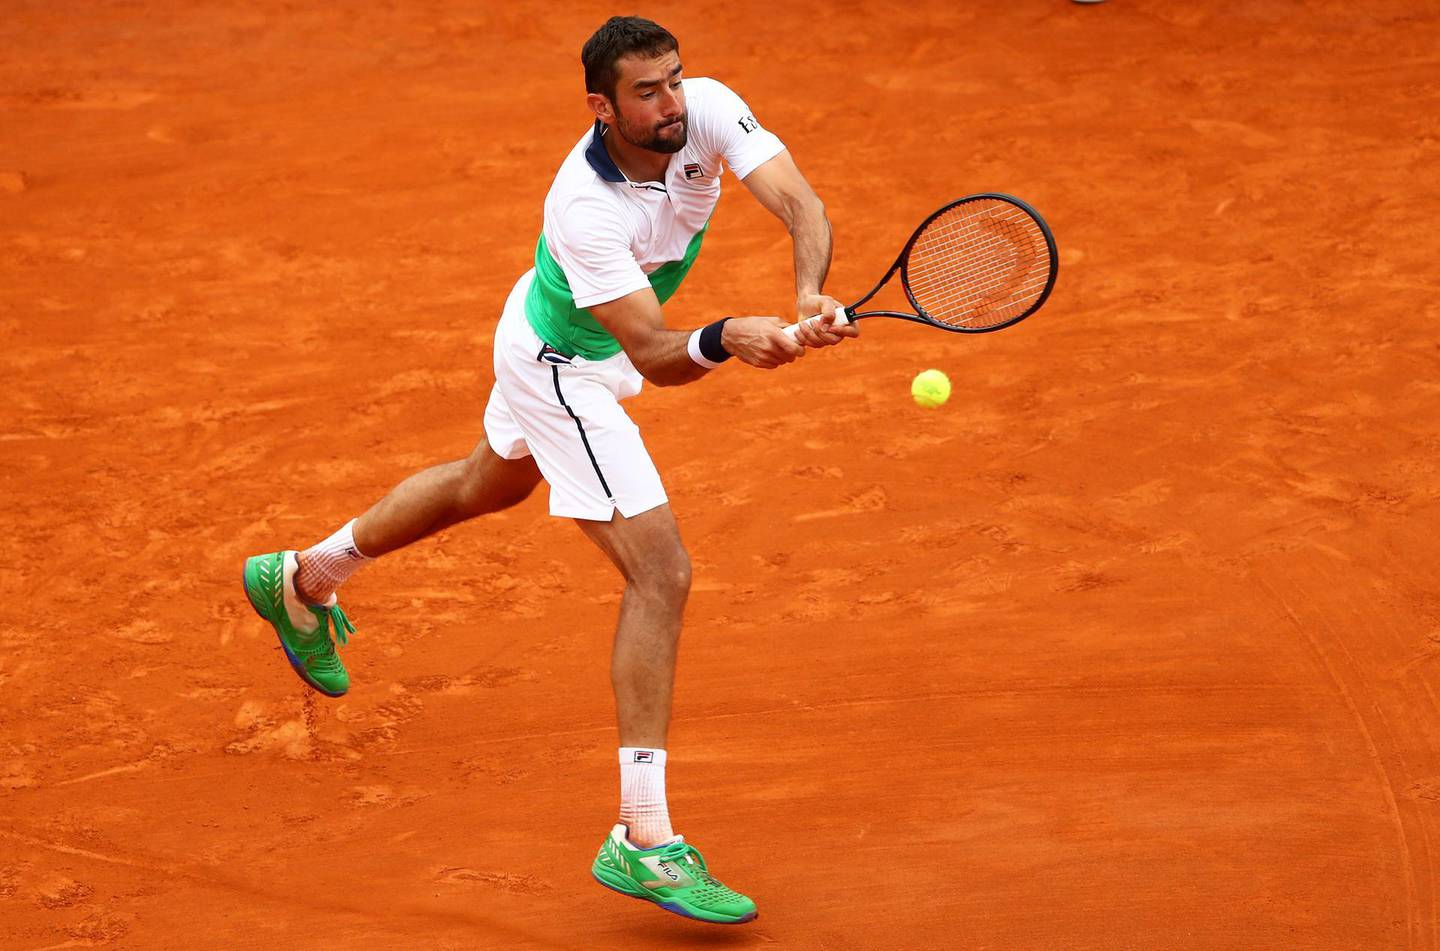 MONTE-CARLO, MONACO - APRIL 16: Marin Cilic of Croatia plays a backhand against Guido Pella of Argentina in their second round match during day 3 of the Rolex Monte-Carlo Masters at Monte-Carlo Country Club on April 16, 2019 in Monte-Carlo, Monaco. (Photo by Clive Brunskill/Getty Images)